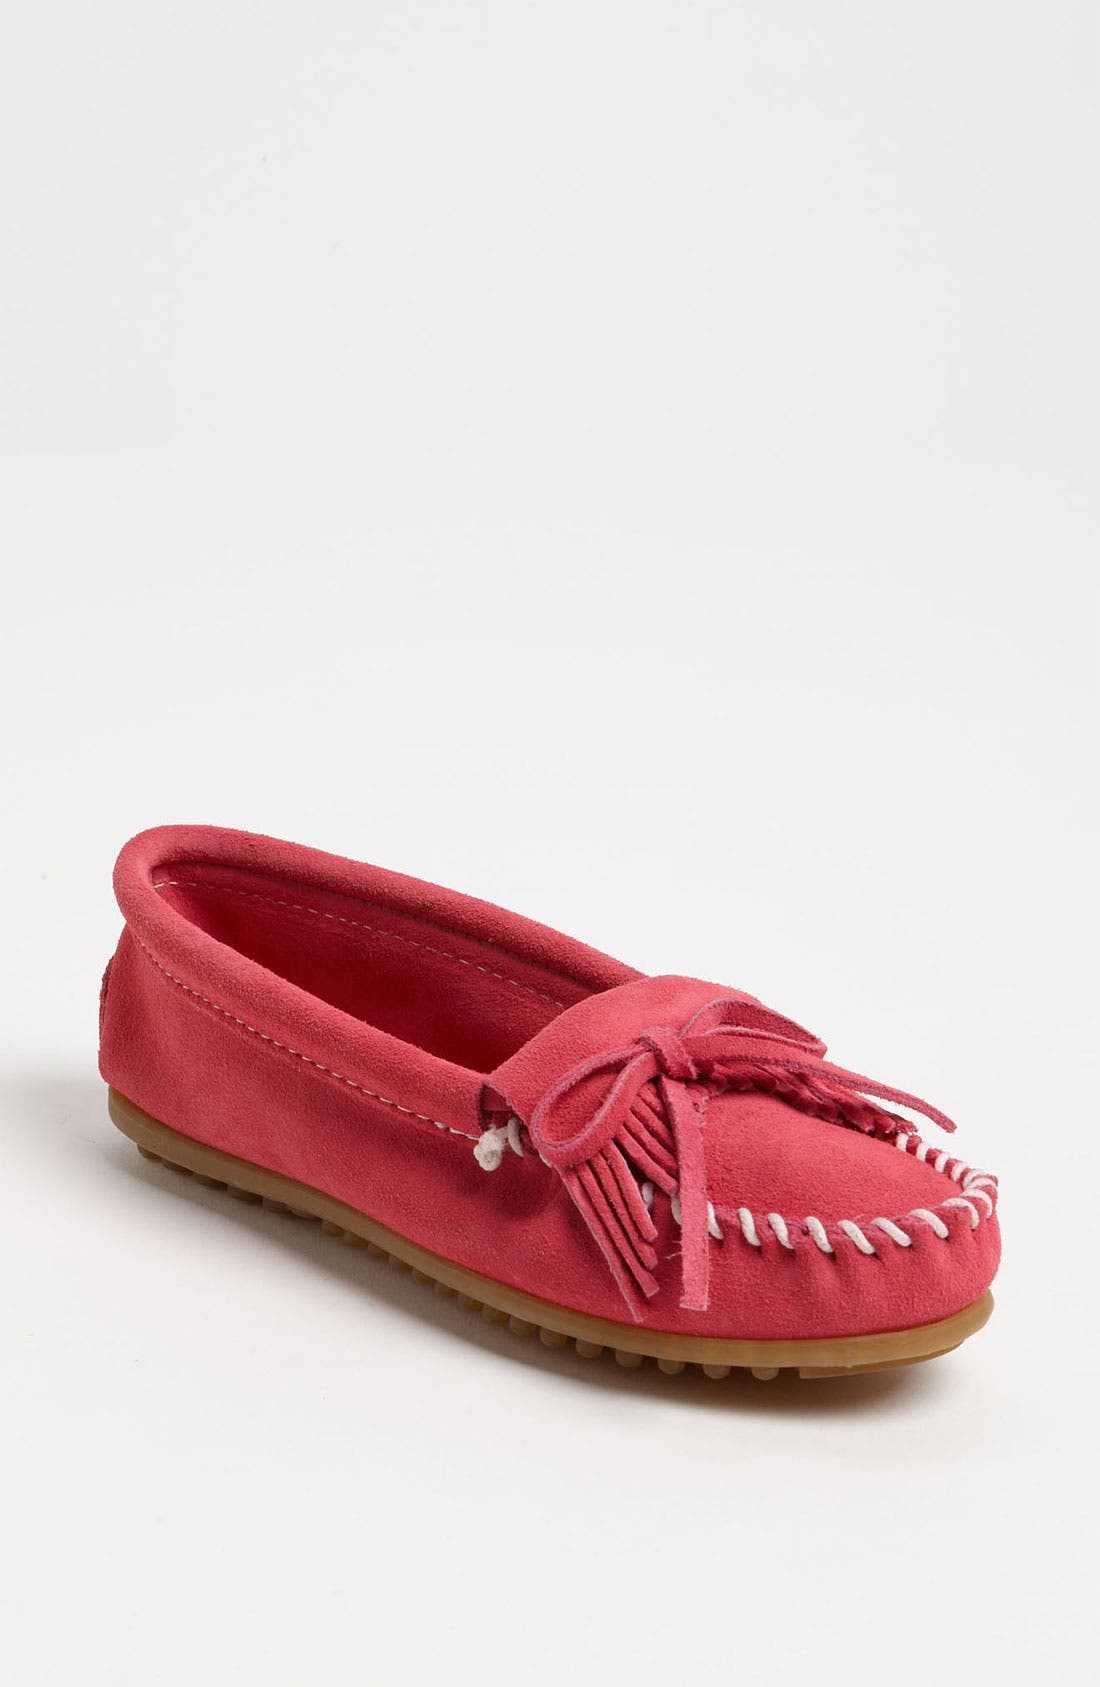 'Kilty' Suede Moccasin,                             Main thumbnail 1, color,                             PINK